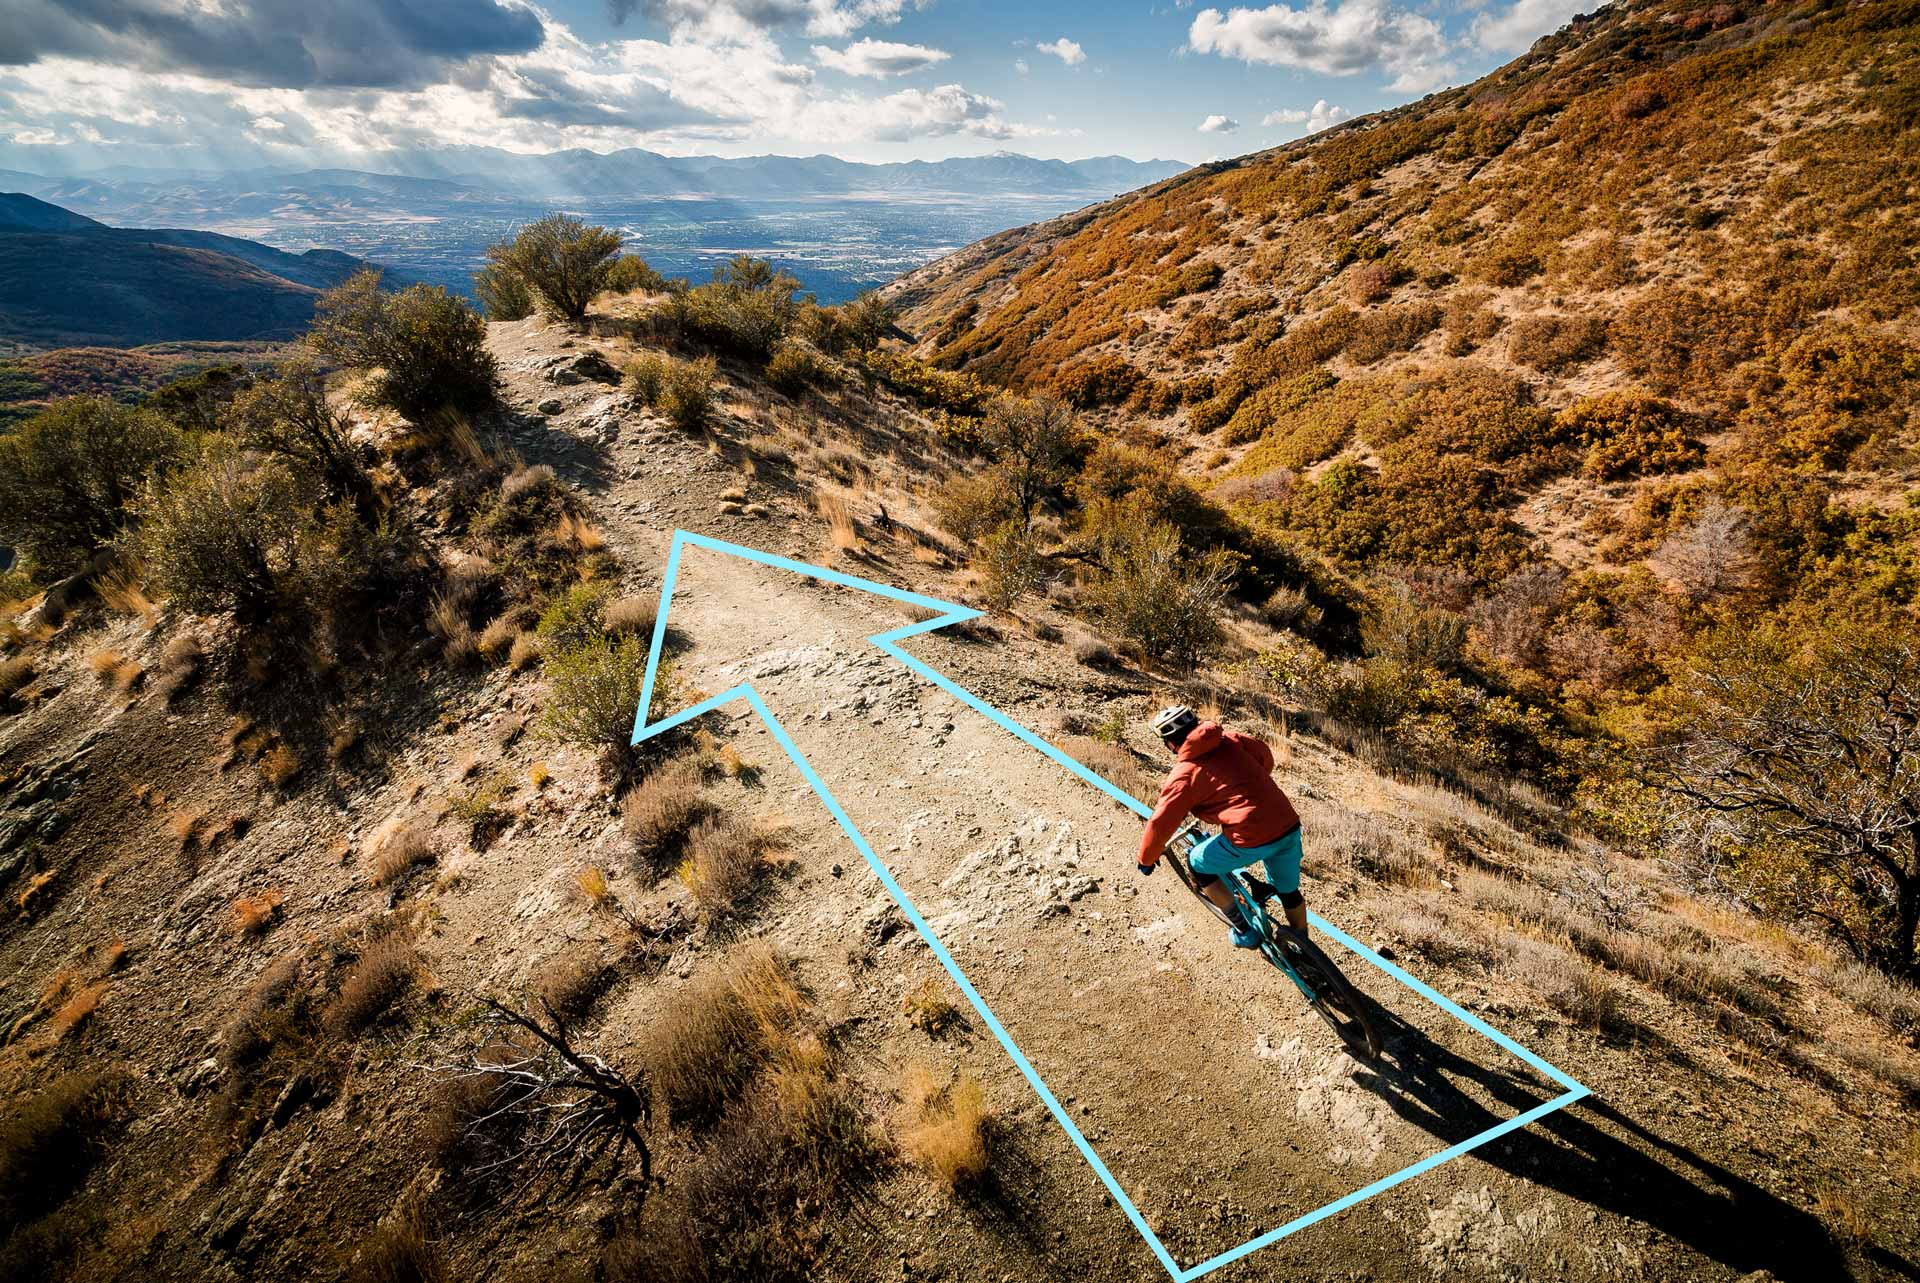 How to take great mountain bike photos - Step four: Use lines to direct your eye to the subject.